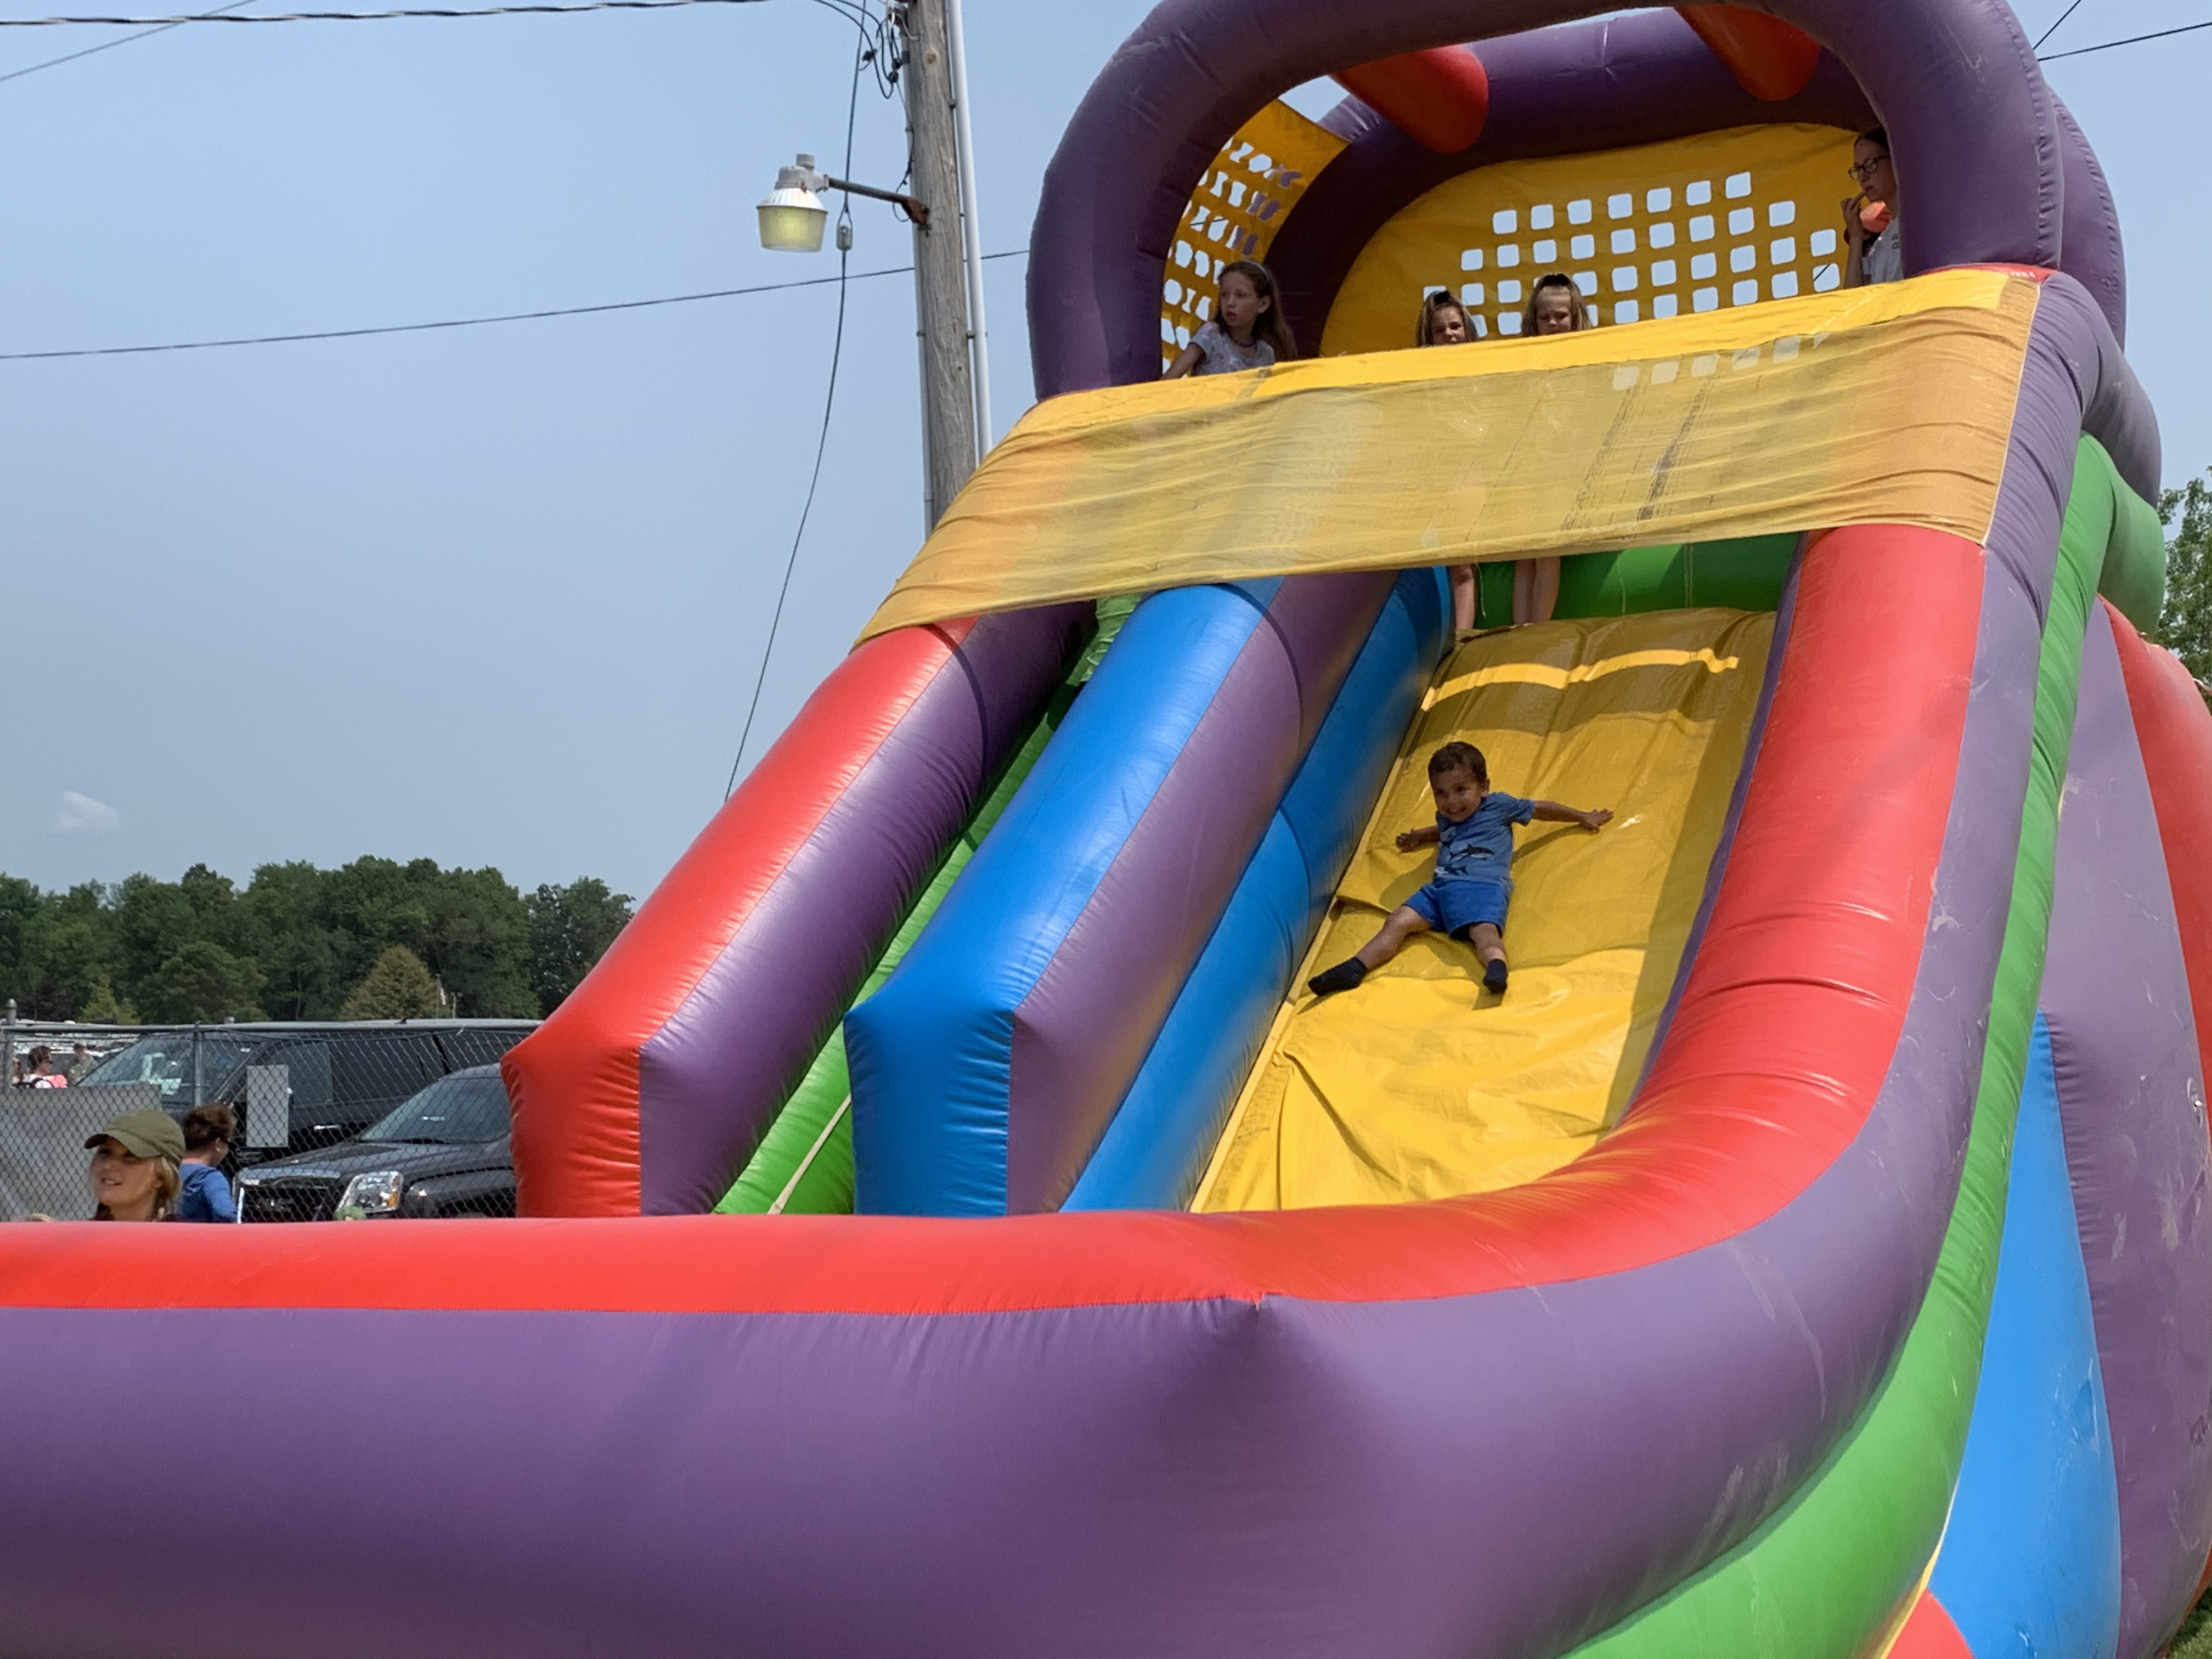 Children were given the opportunity to slide down inflatable slides in the children area at the Polka Days Grounds on July 18.Luke Reimer   NEW Media